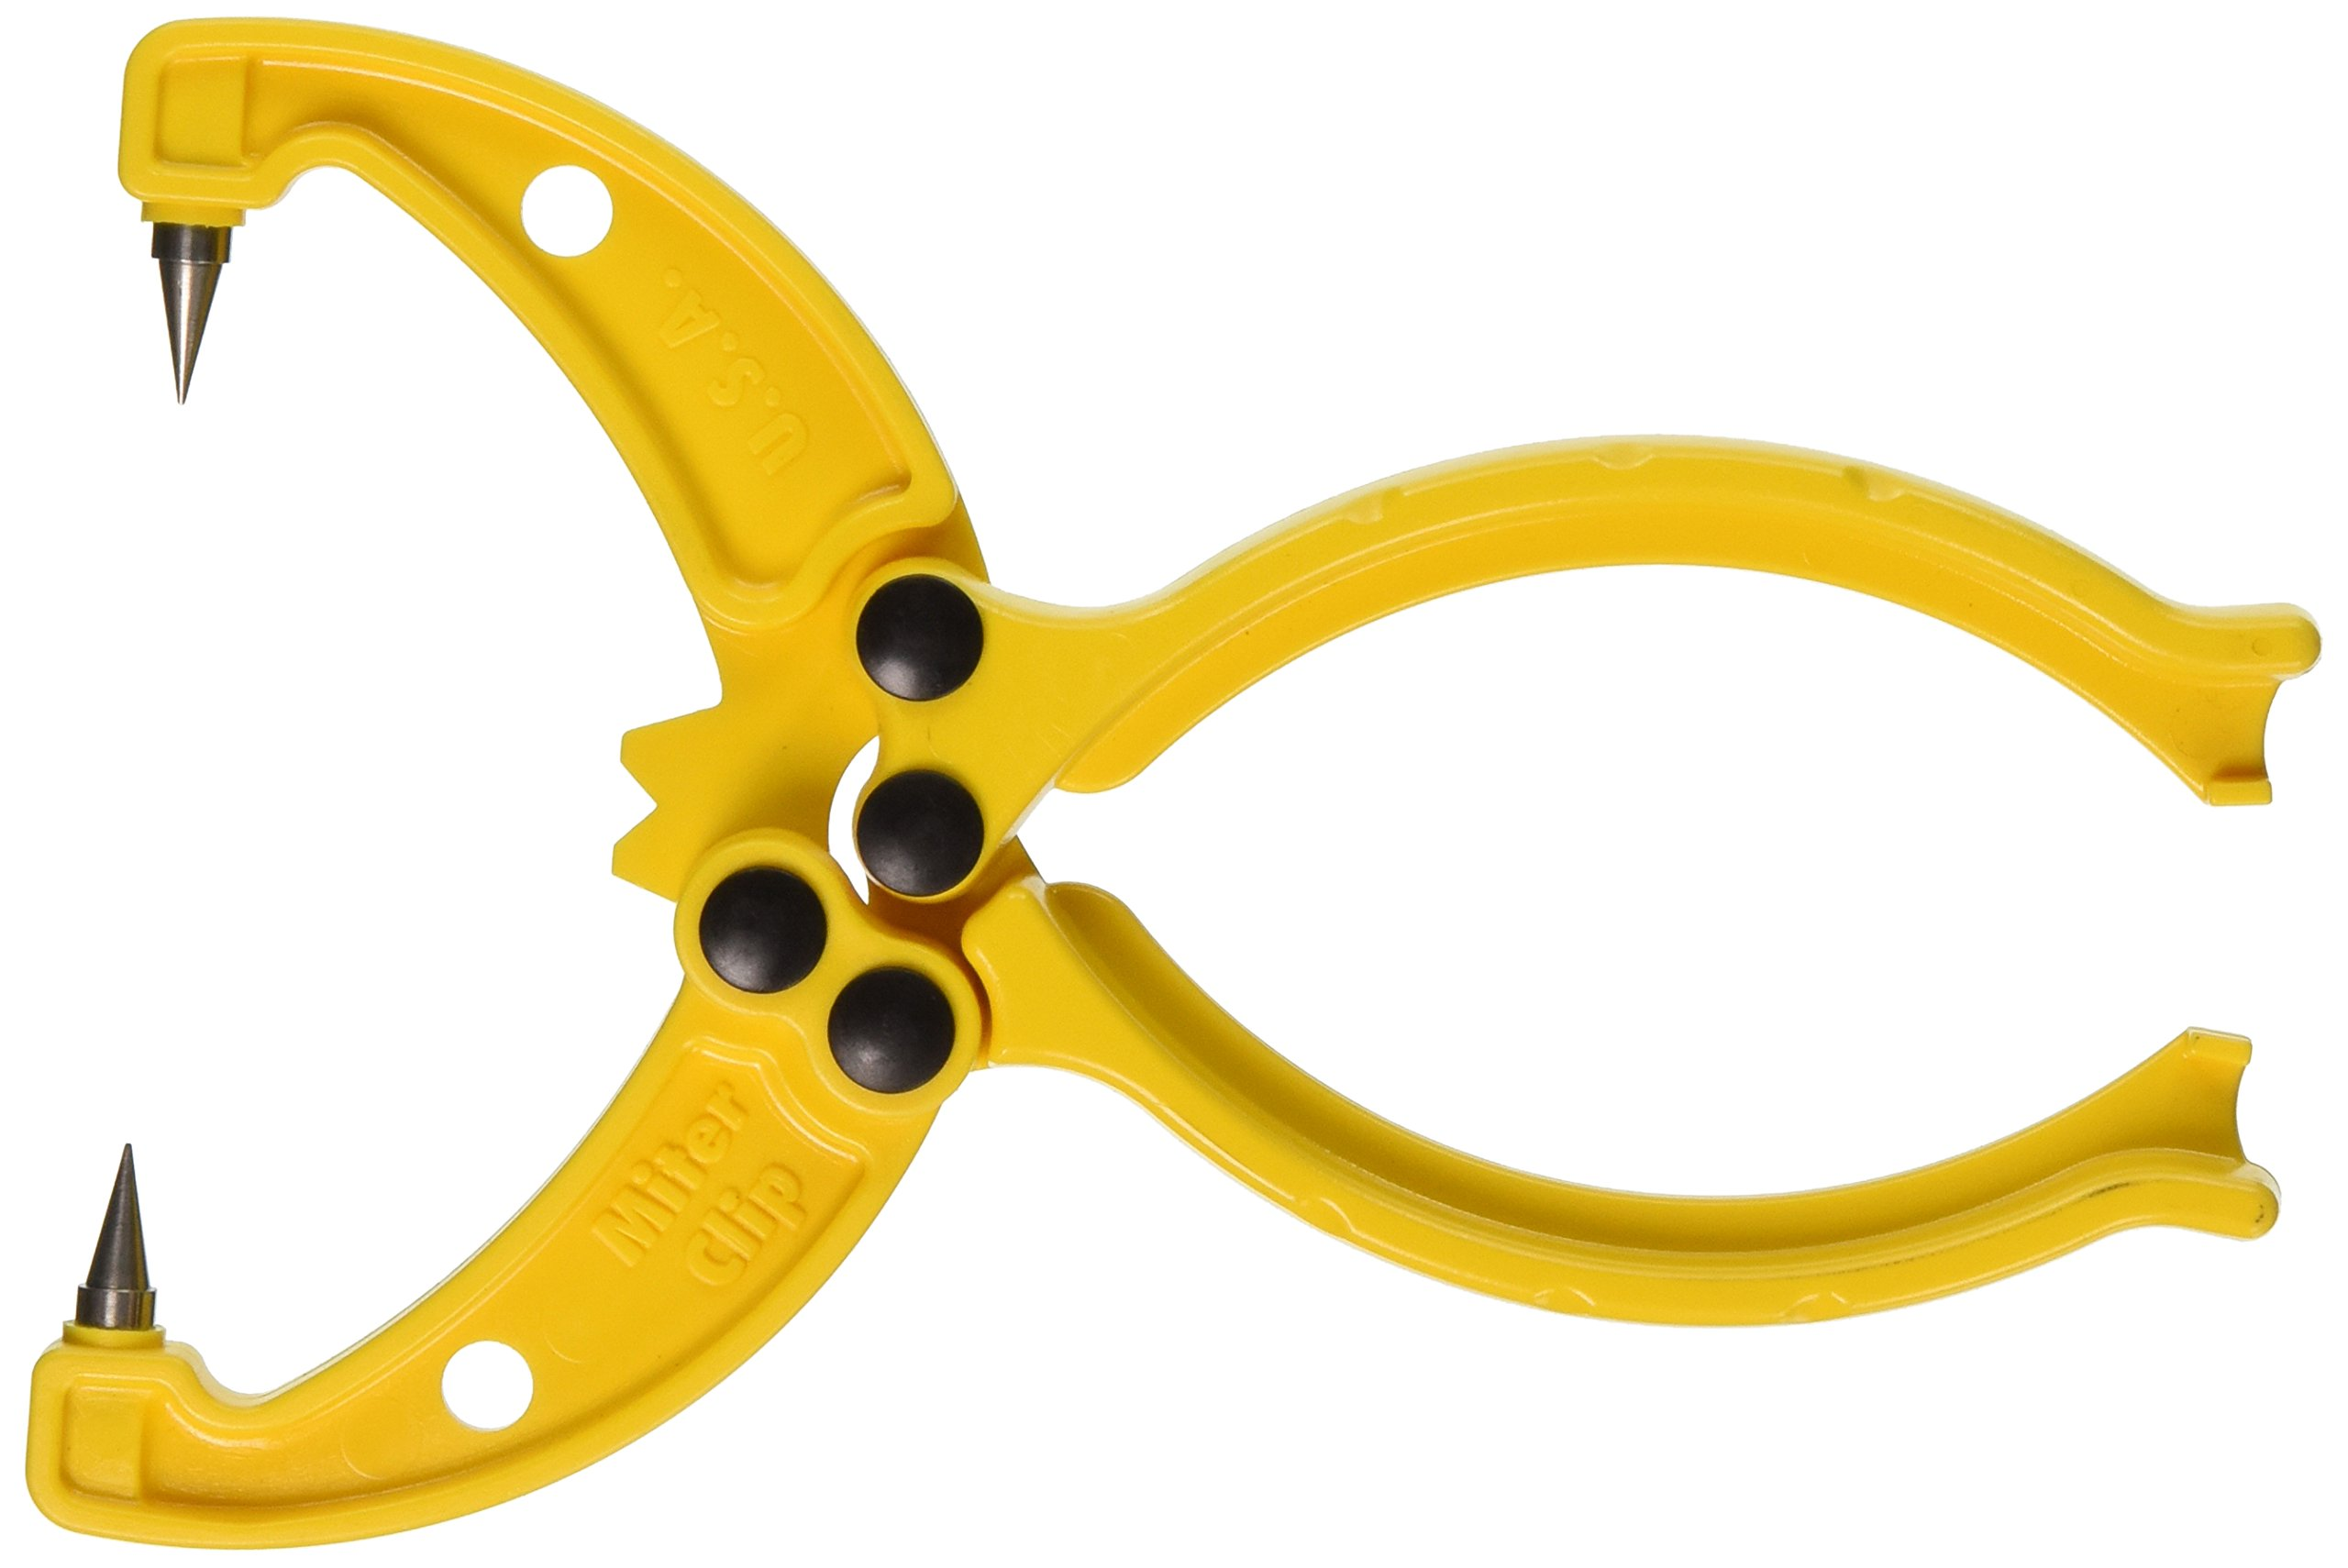 Miter Clip 003027 Corner Clamp for Tight Glue Joints, Yellow